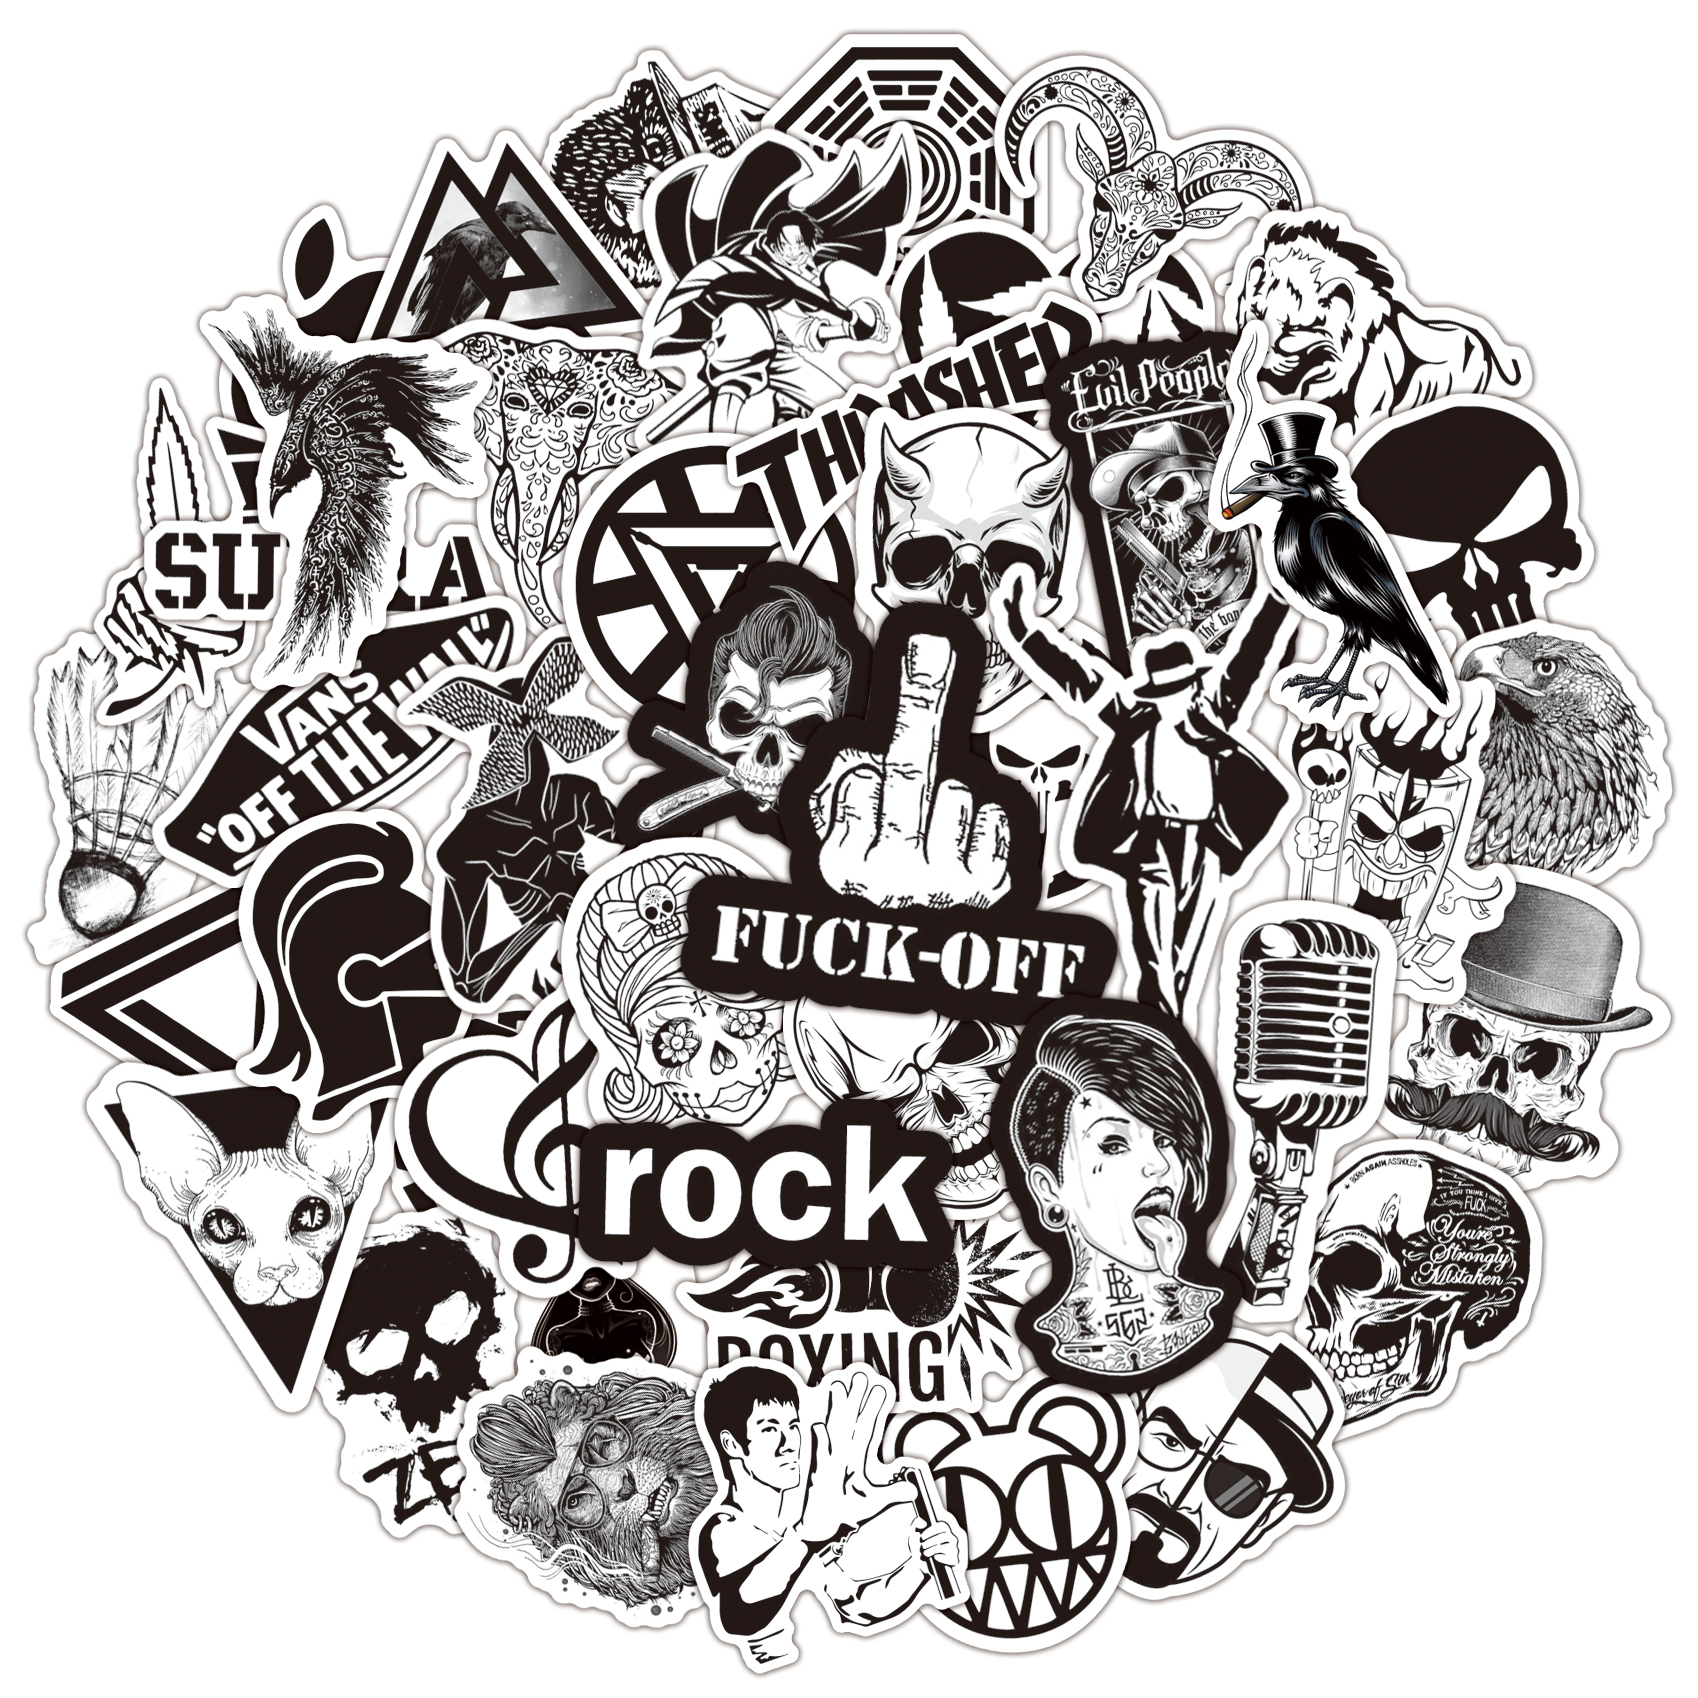 50Pcs Black And White Stickers Horror Cool Skull Rock Sticker For Luggage Laptop Bicycle Motorcycle Laptop Toys Stickers Sets